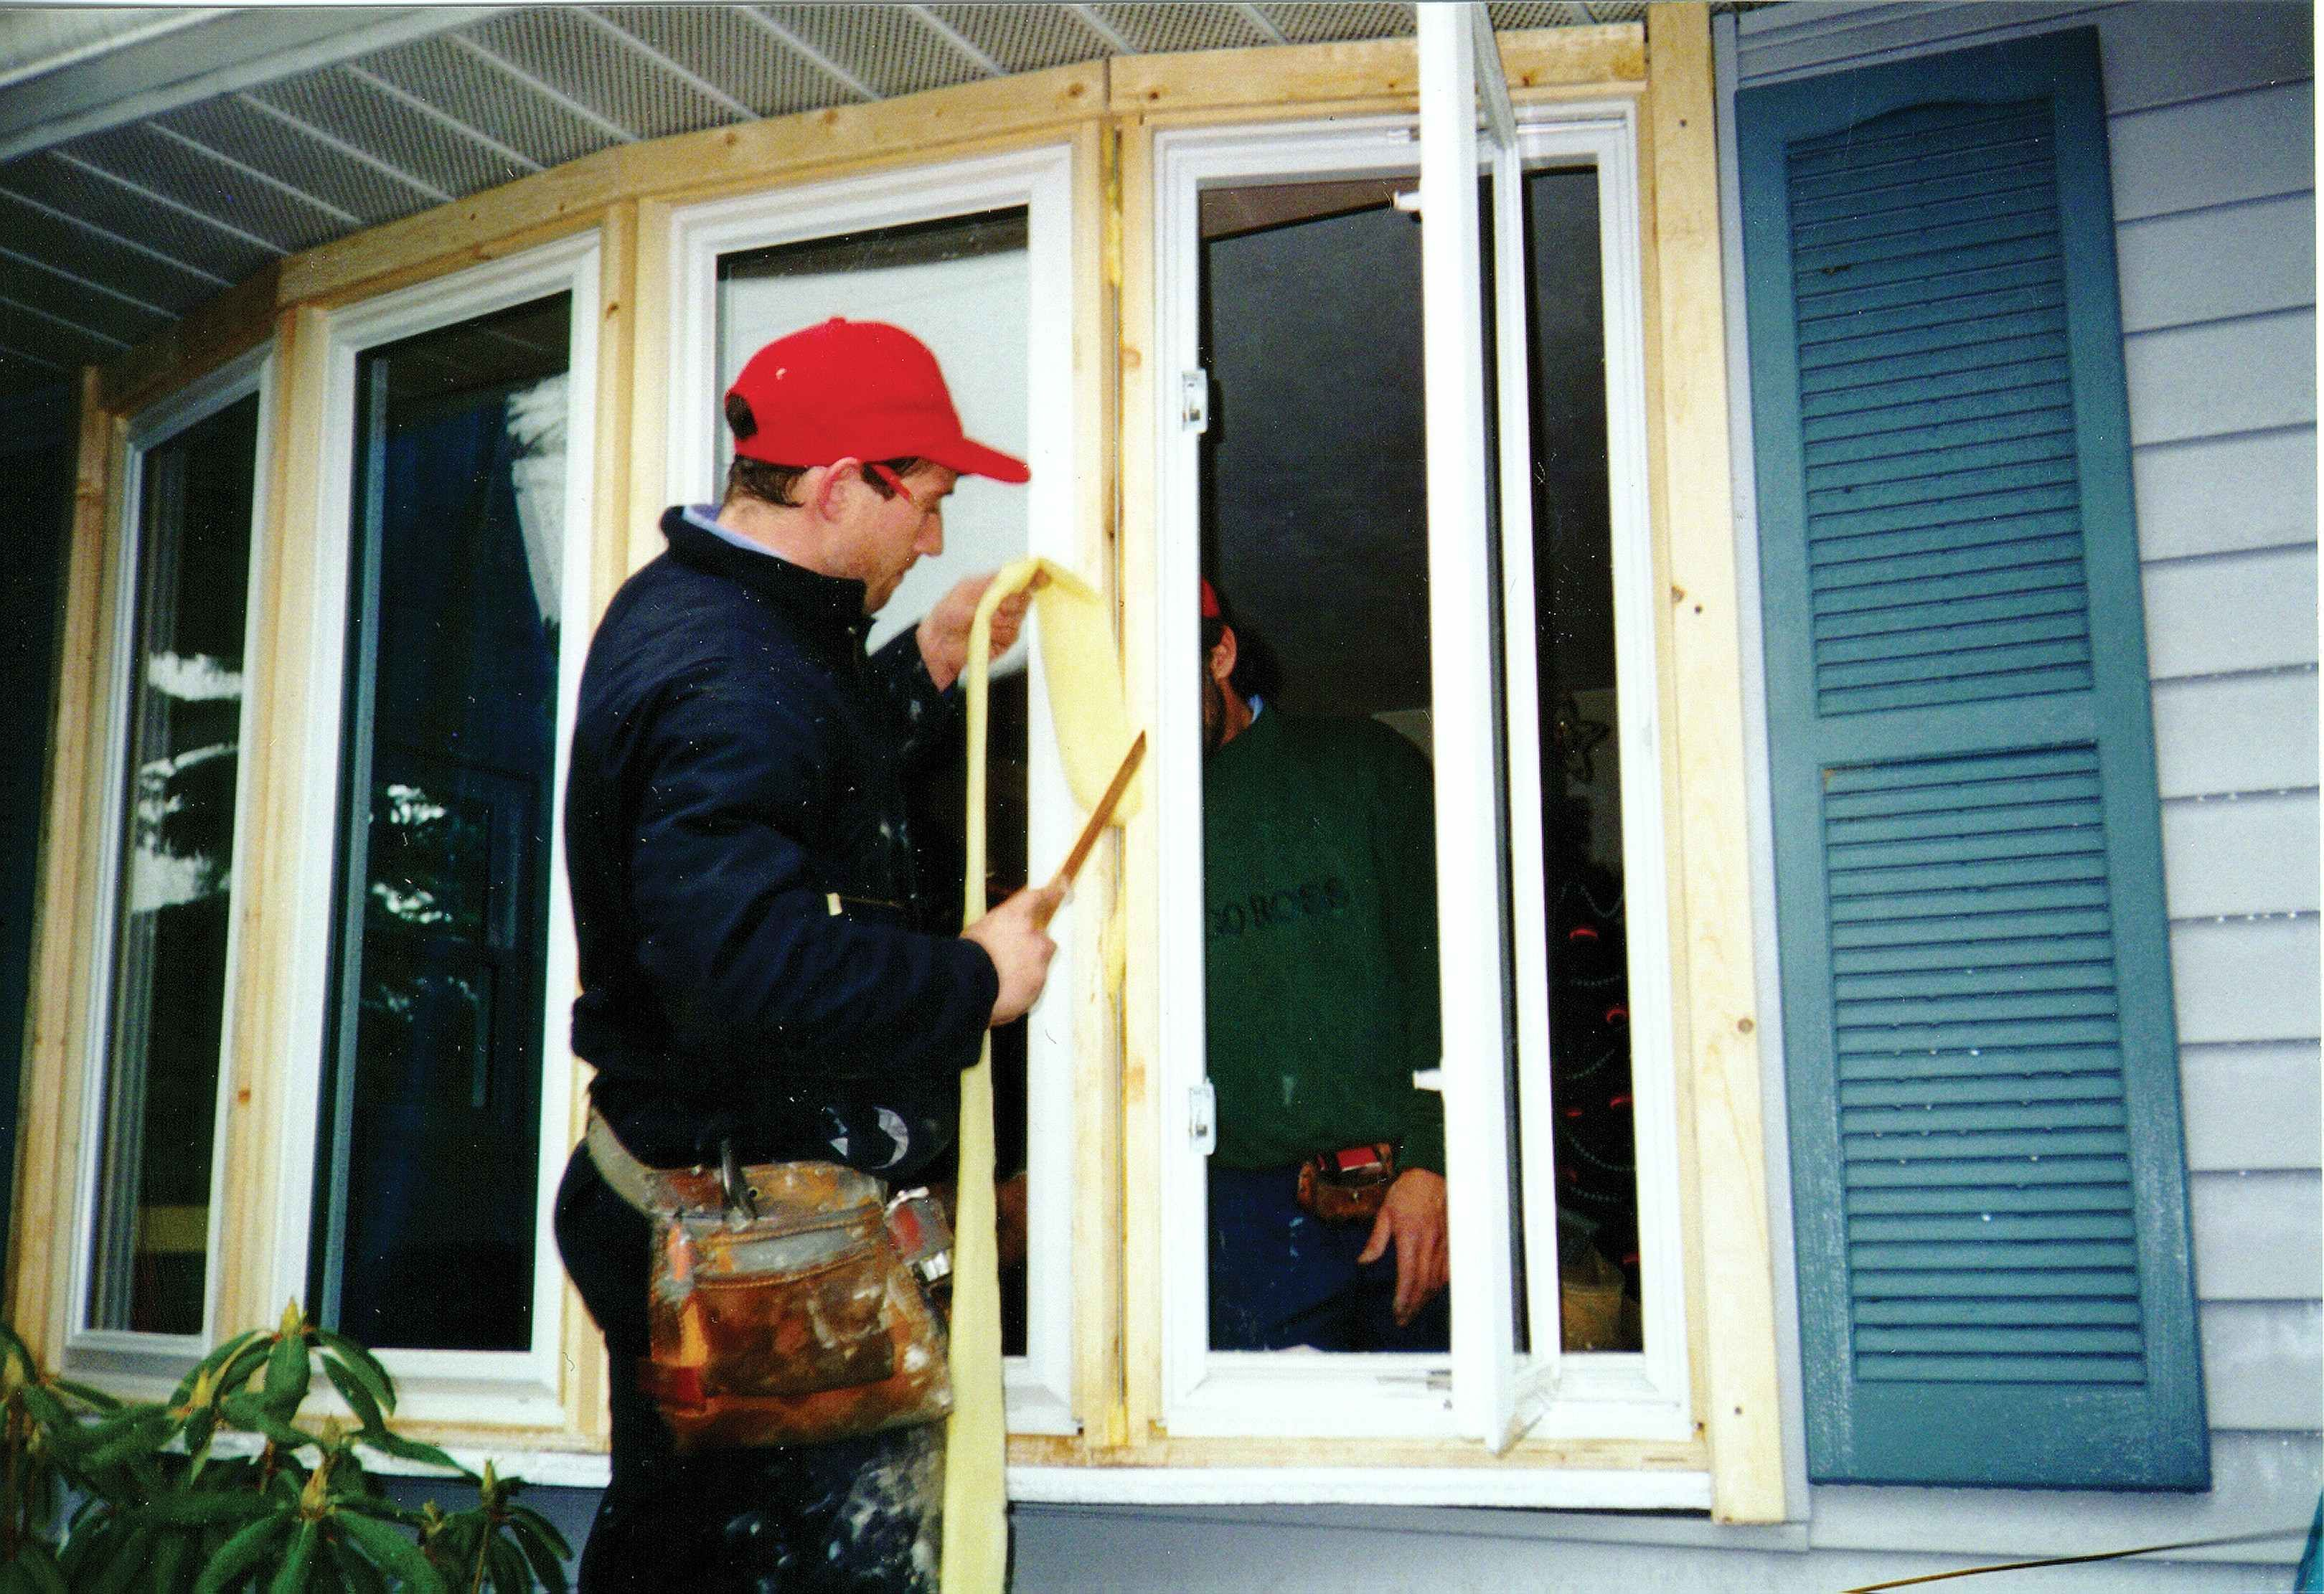 Welcome To The Toronto Window Repairs You Can Use Our Excell